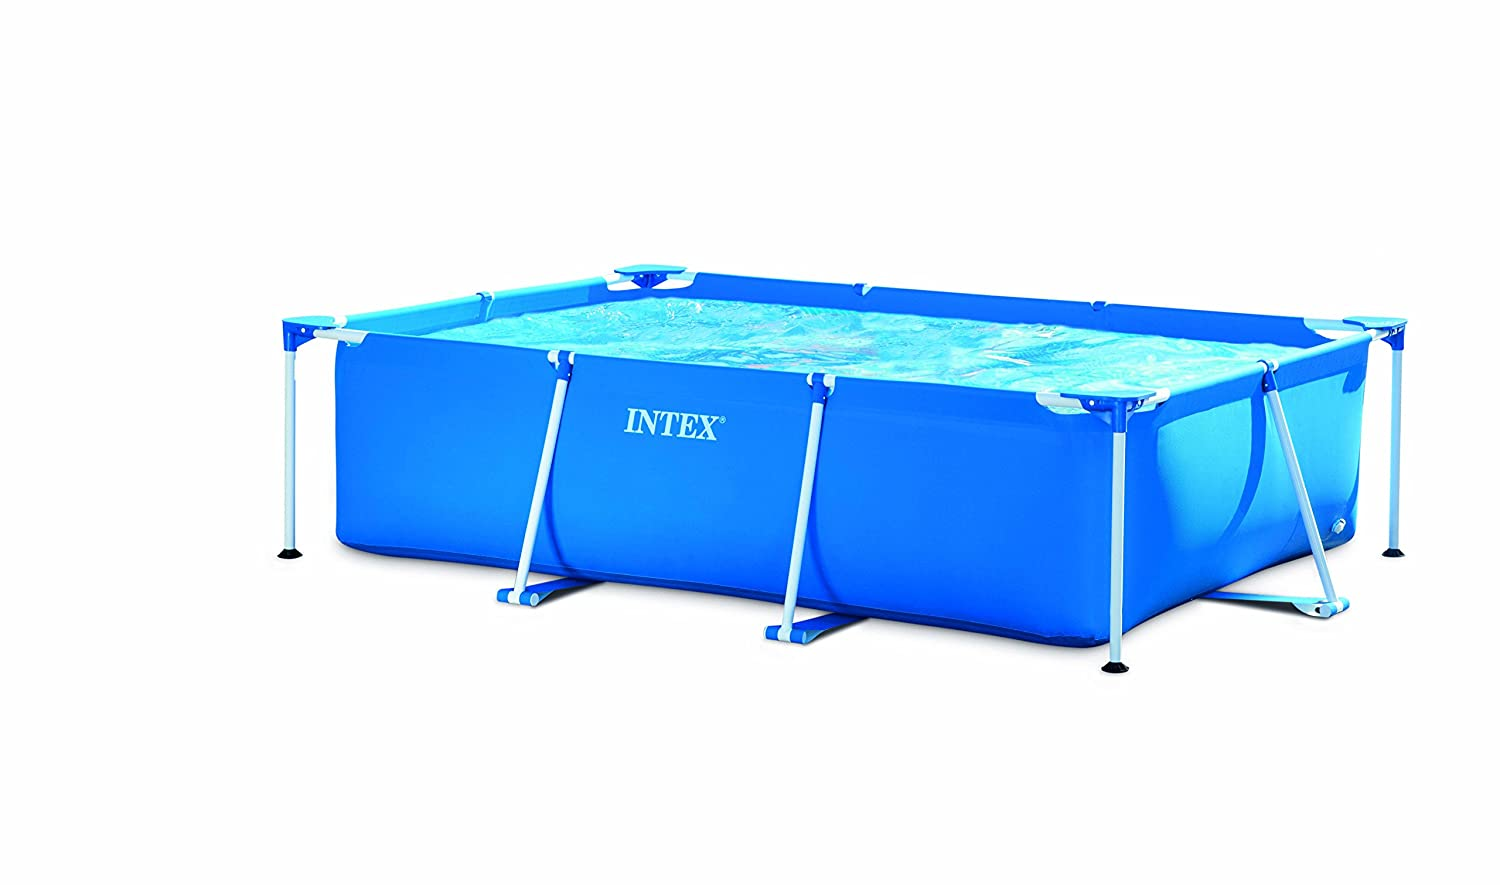 Intex - Kit de Piscina Rectangular, Azul, 3800 l, 300 x 200 x 75 cm: Amazon.es: Jardín